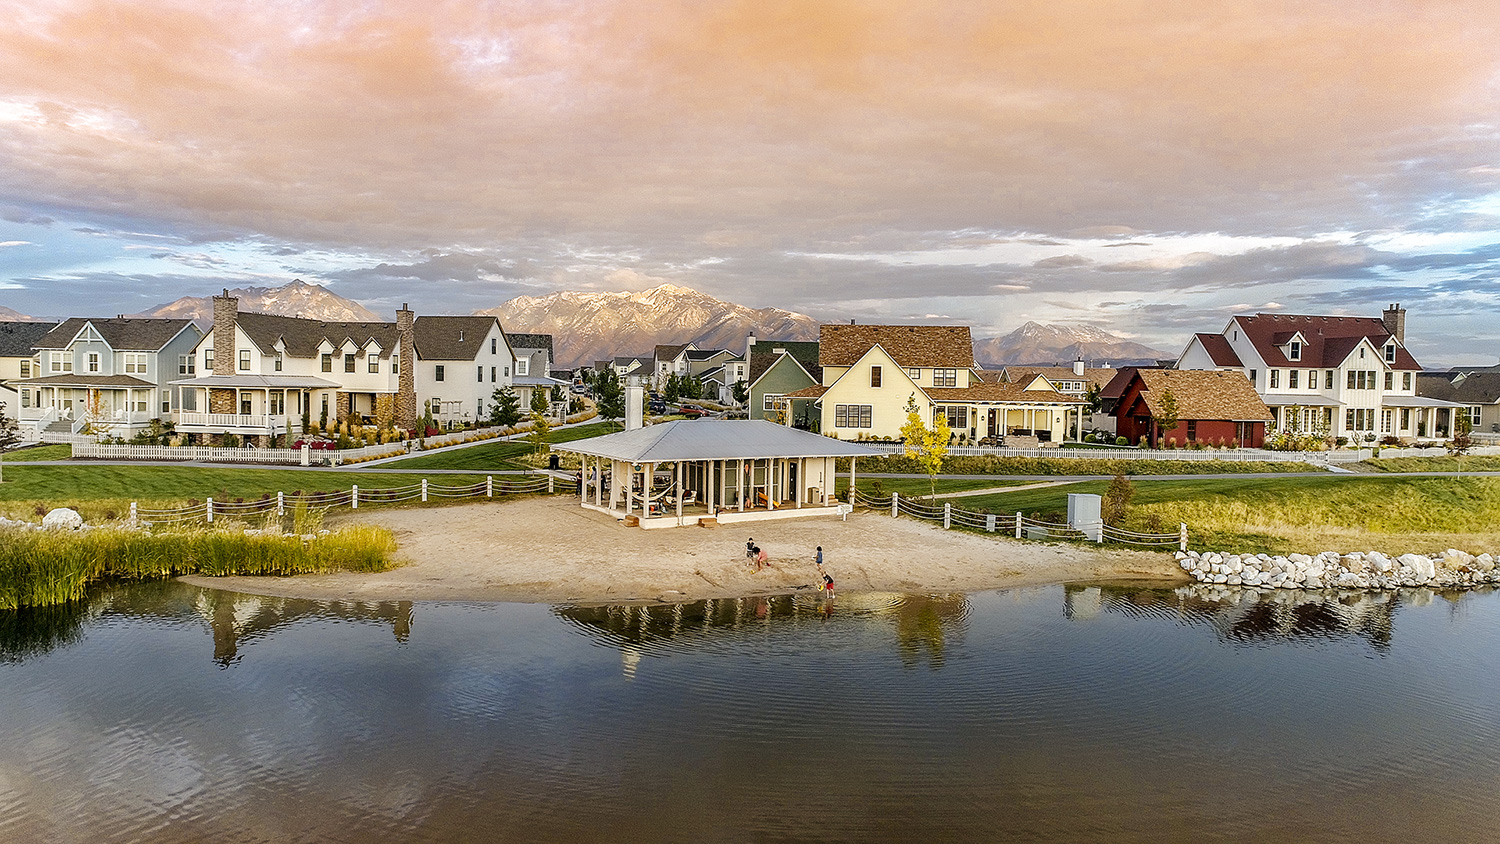 View of the Daybreak community in Utah with views of the mountains